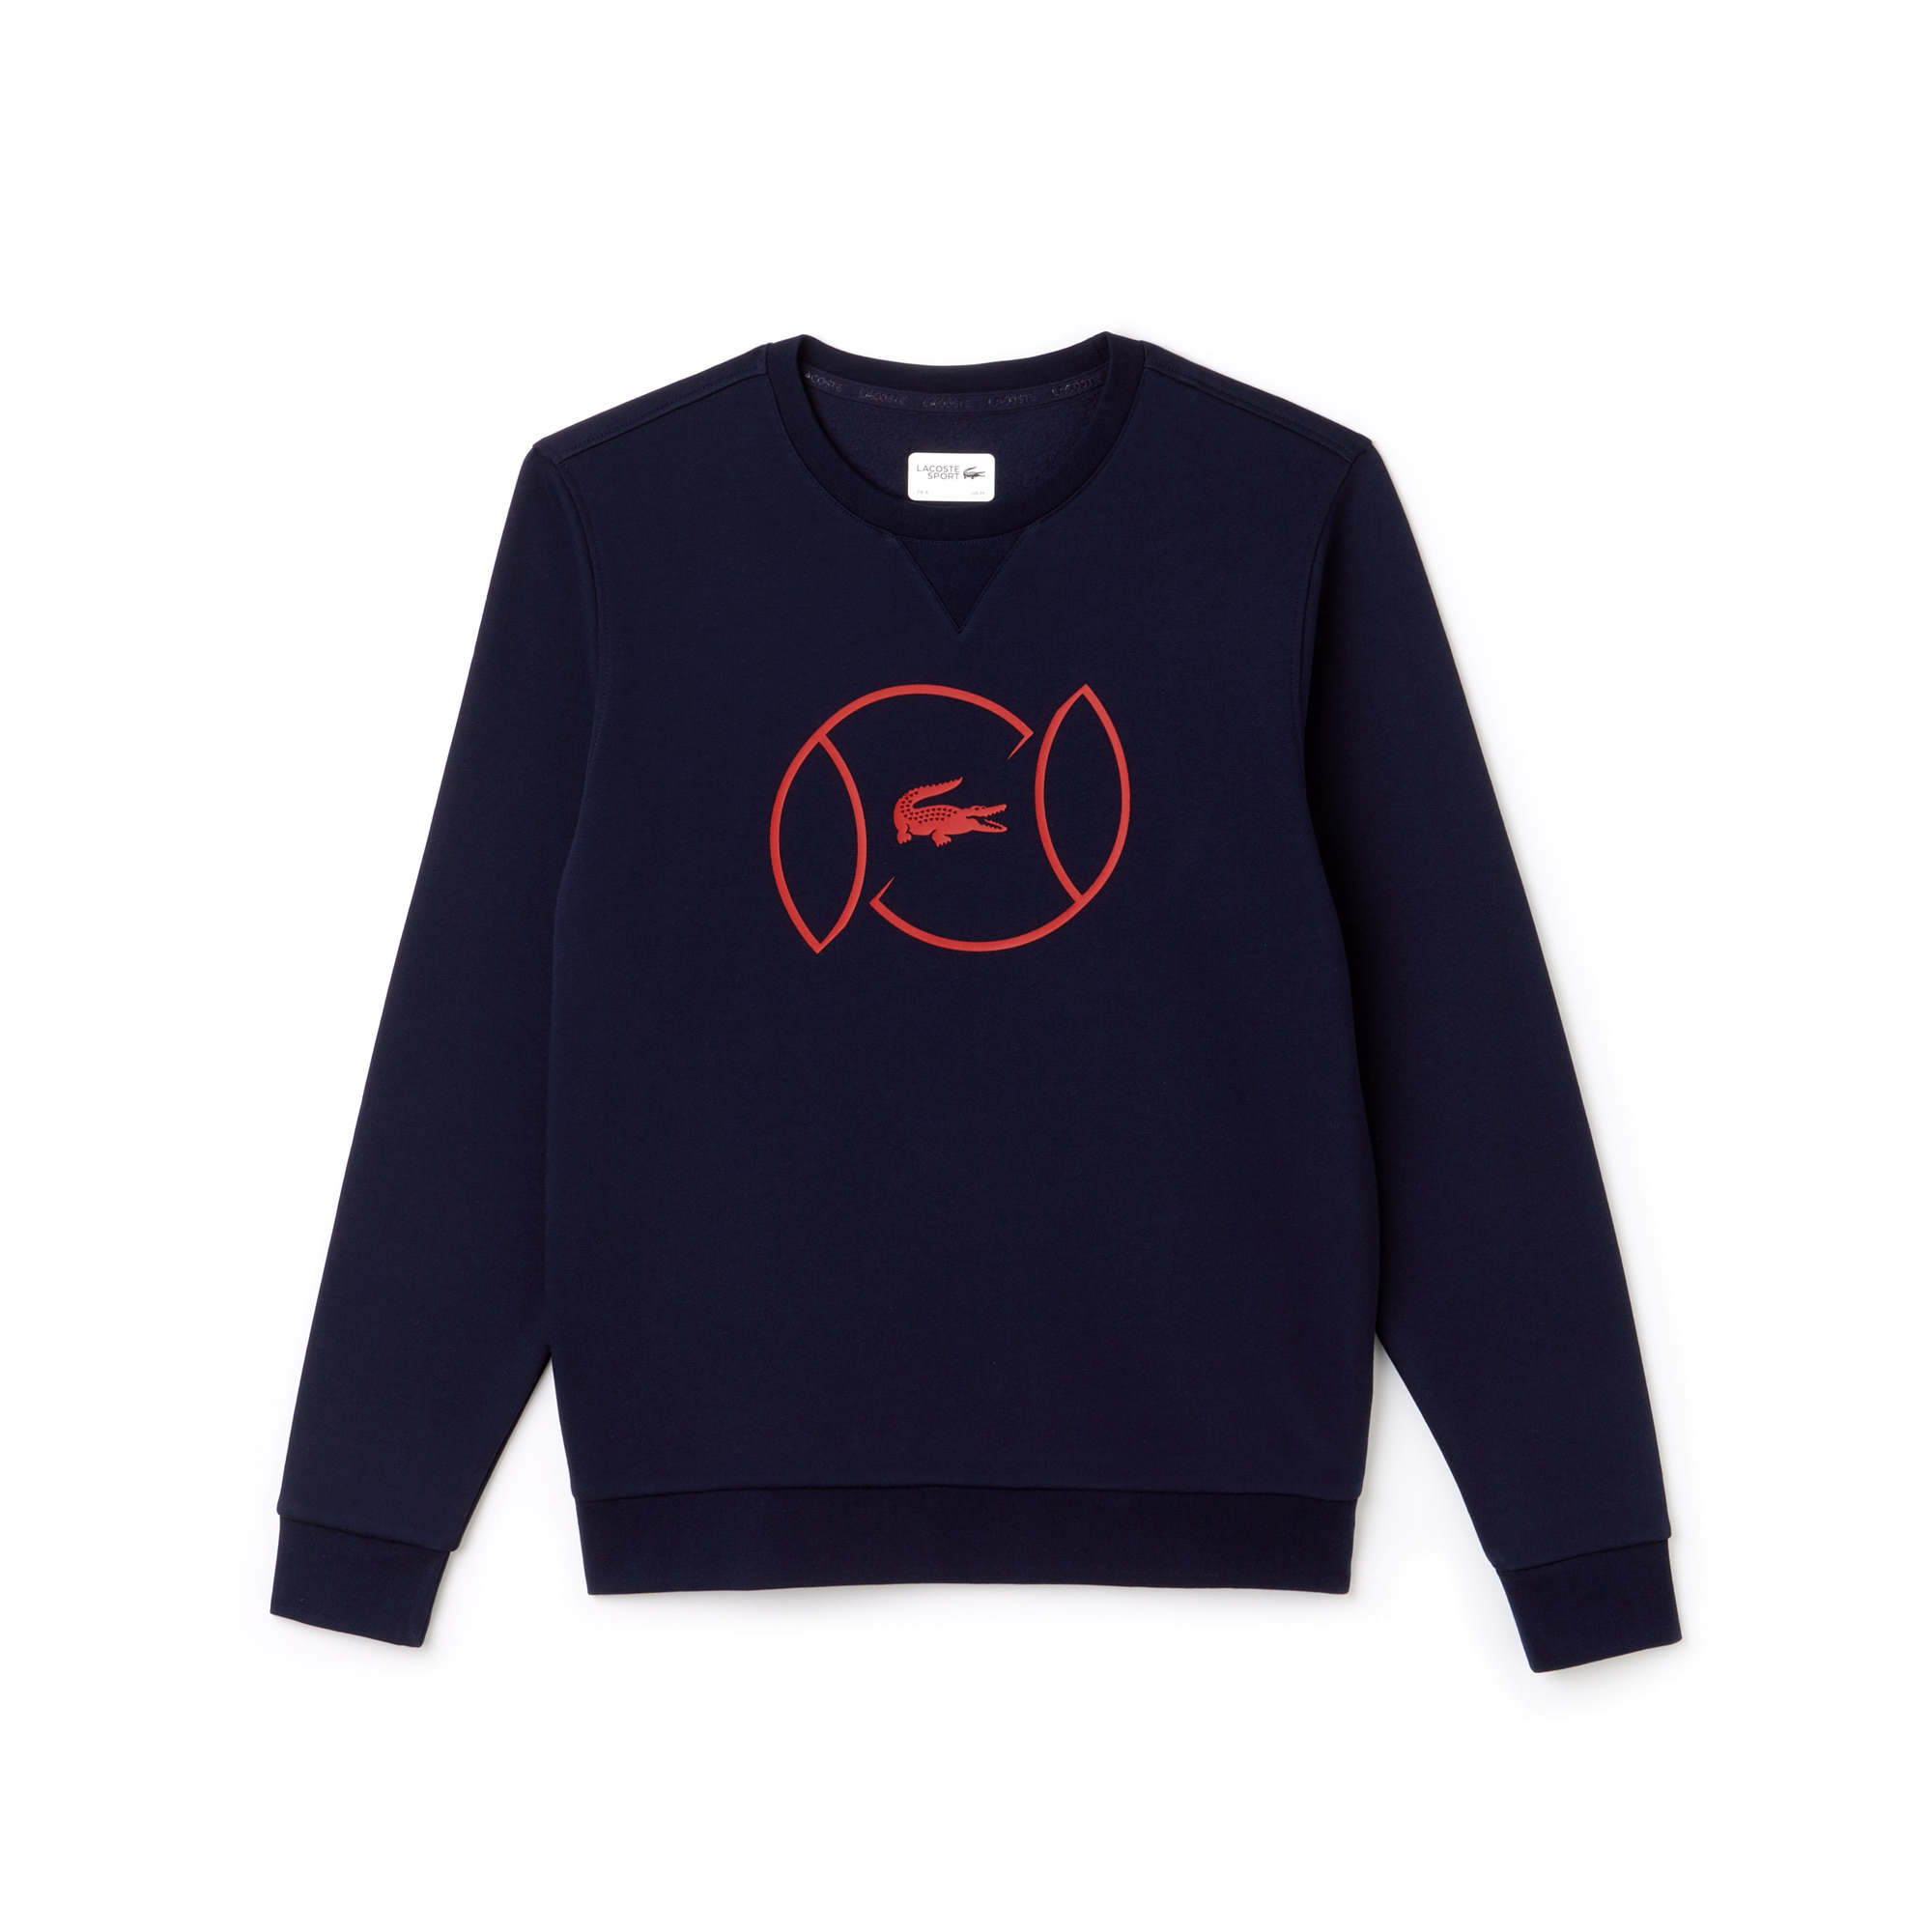 Men's Lacoste SPORT Fleece And Lettering Tennis Sweatshirt